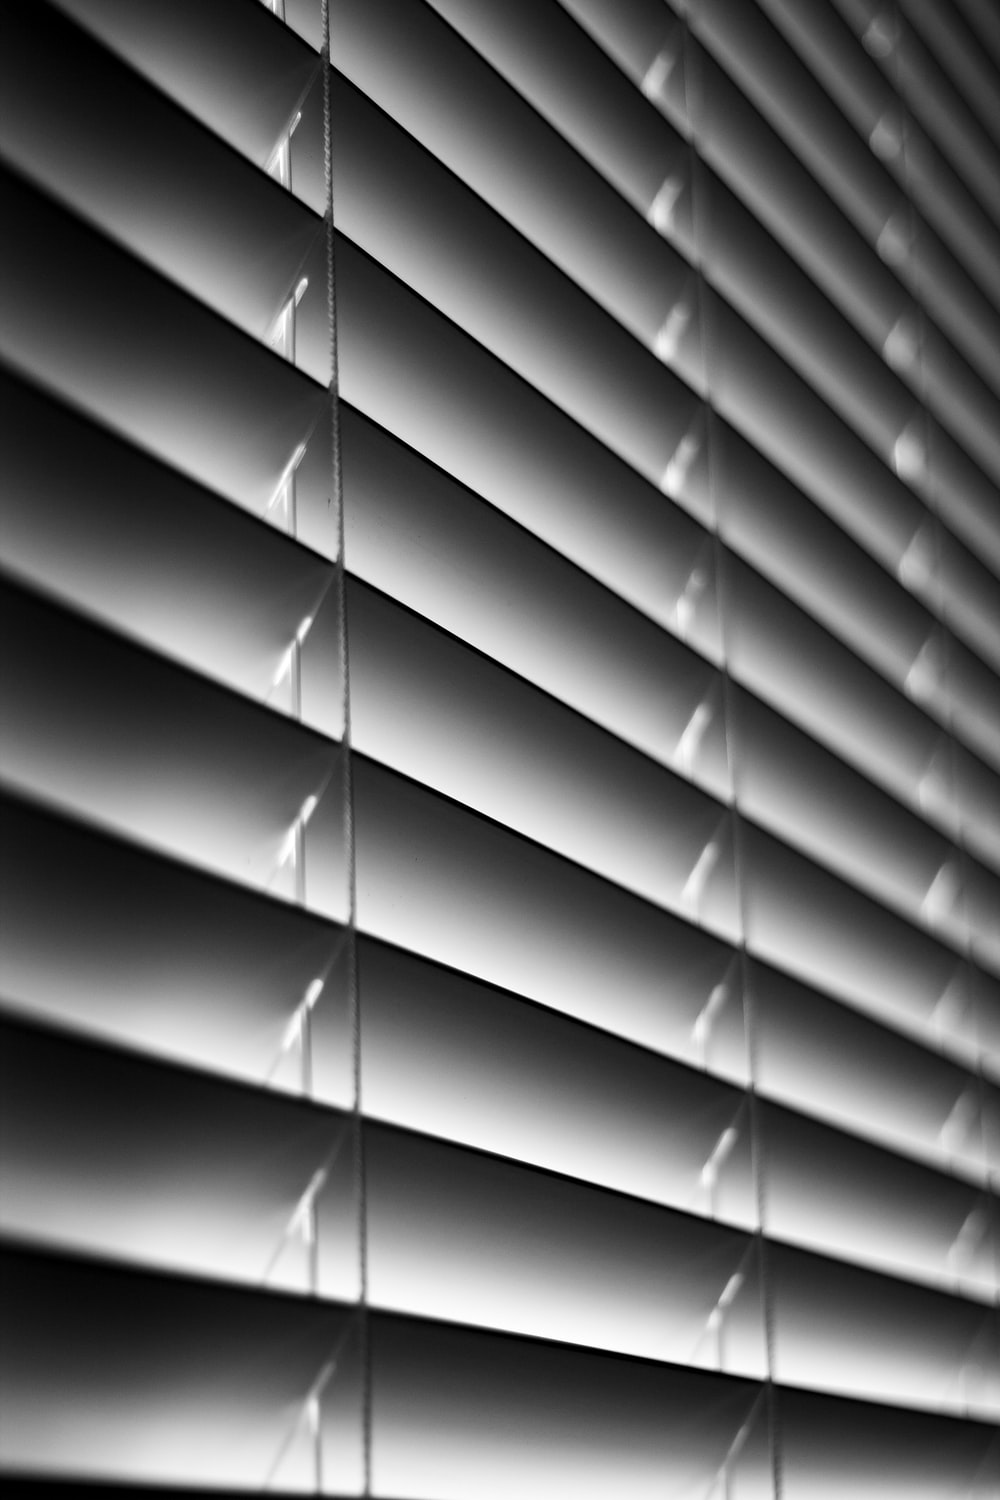 grayscale photo of window blinds